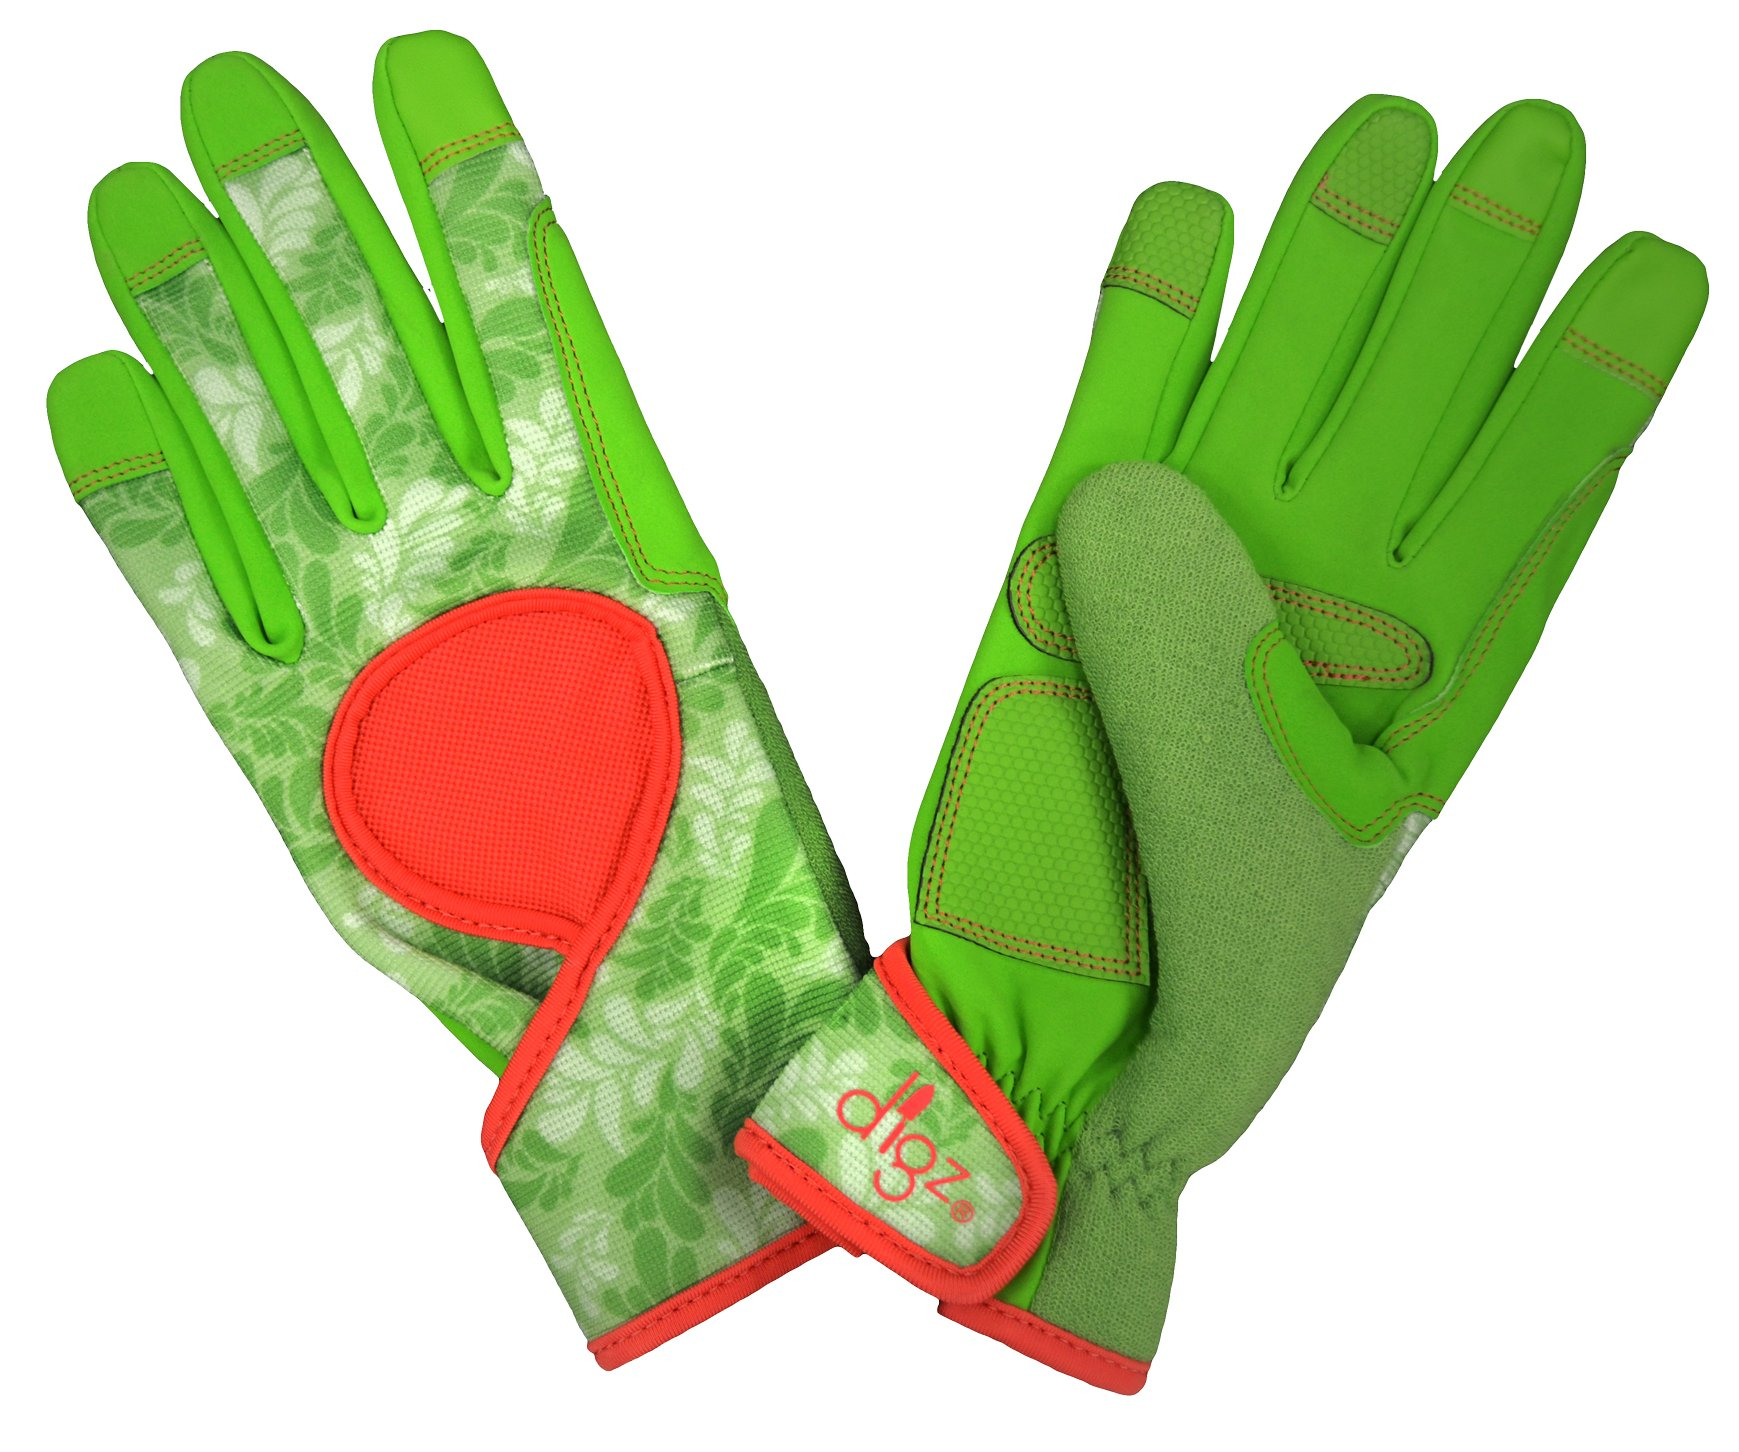 DIGZ Signature High Performance Women's Gardening Gloves and Work Gloves with Touch Screen Compatible fingertips, Large